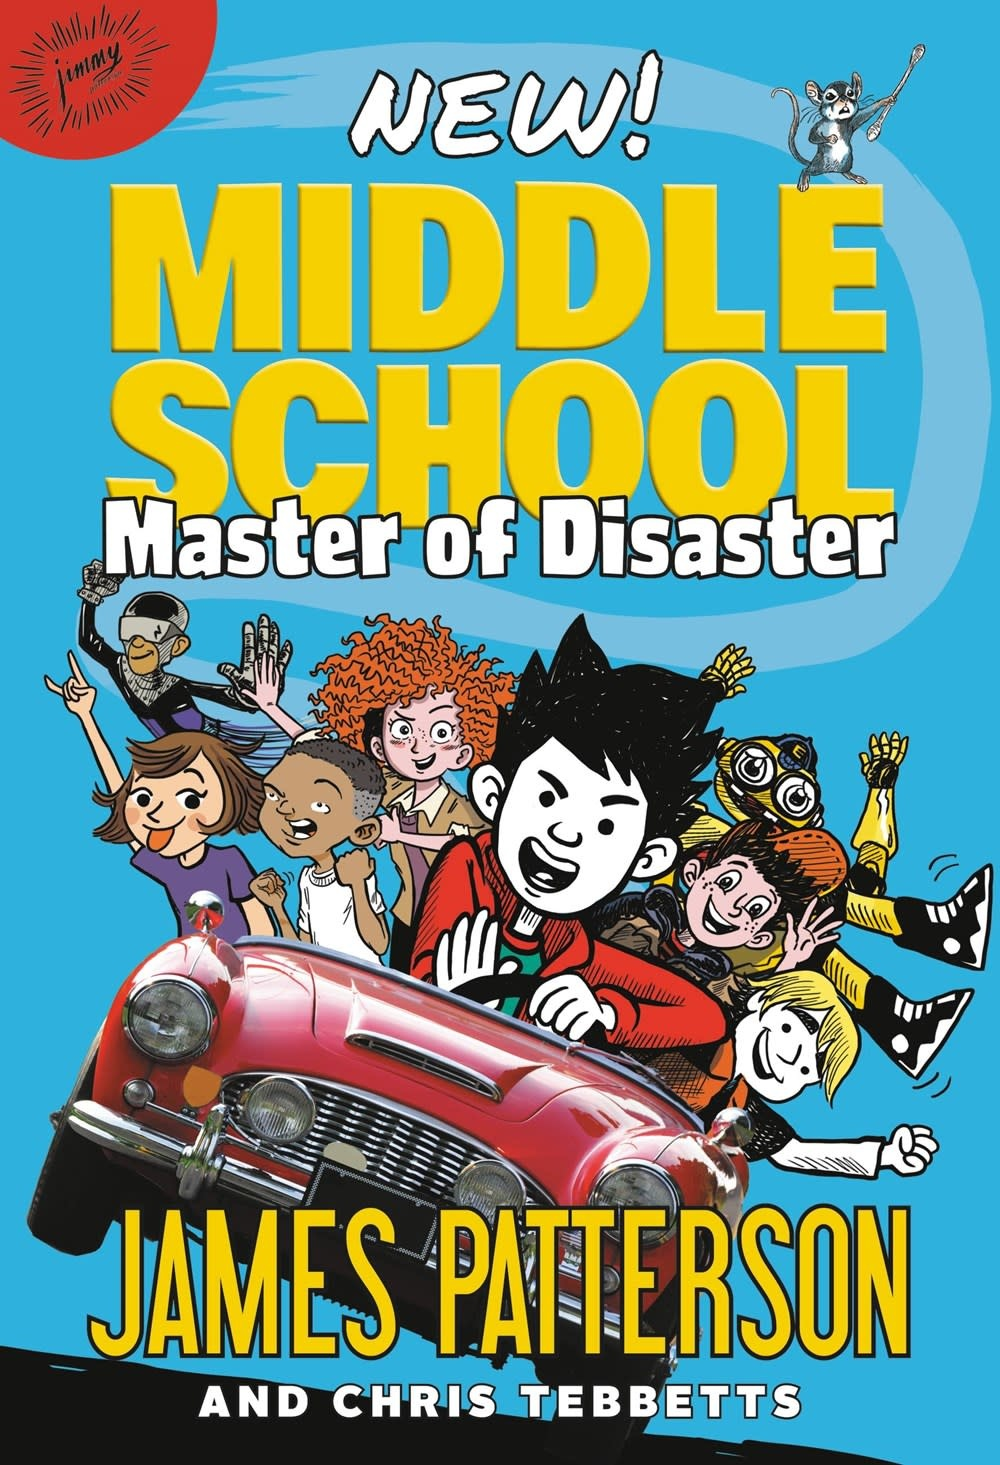 jimmy patterson Middle School: Master of Disaster